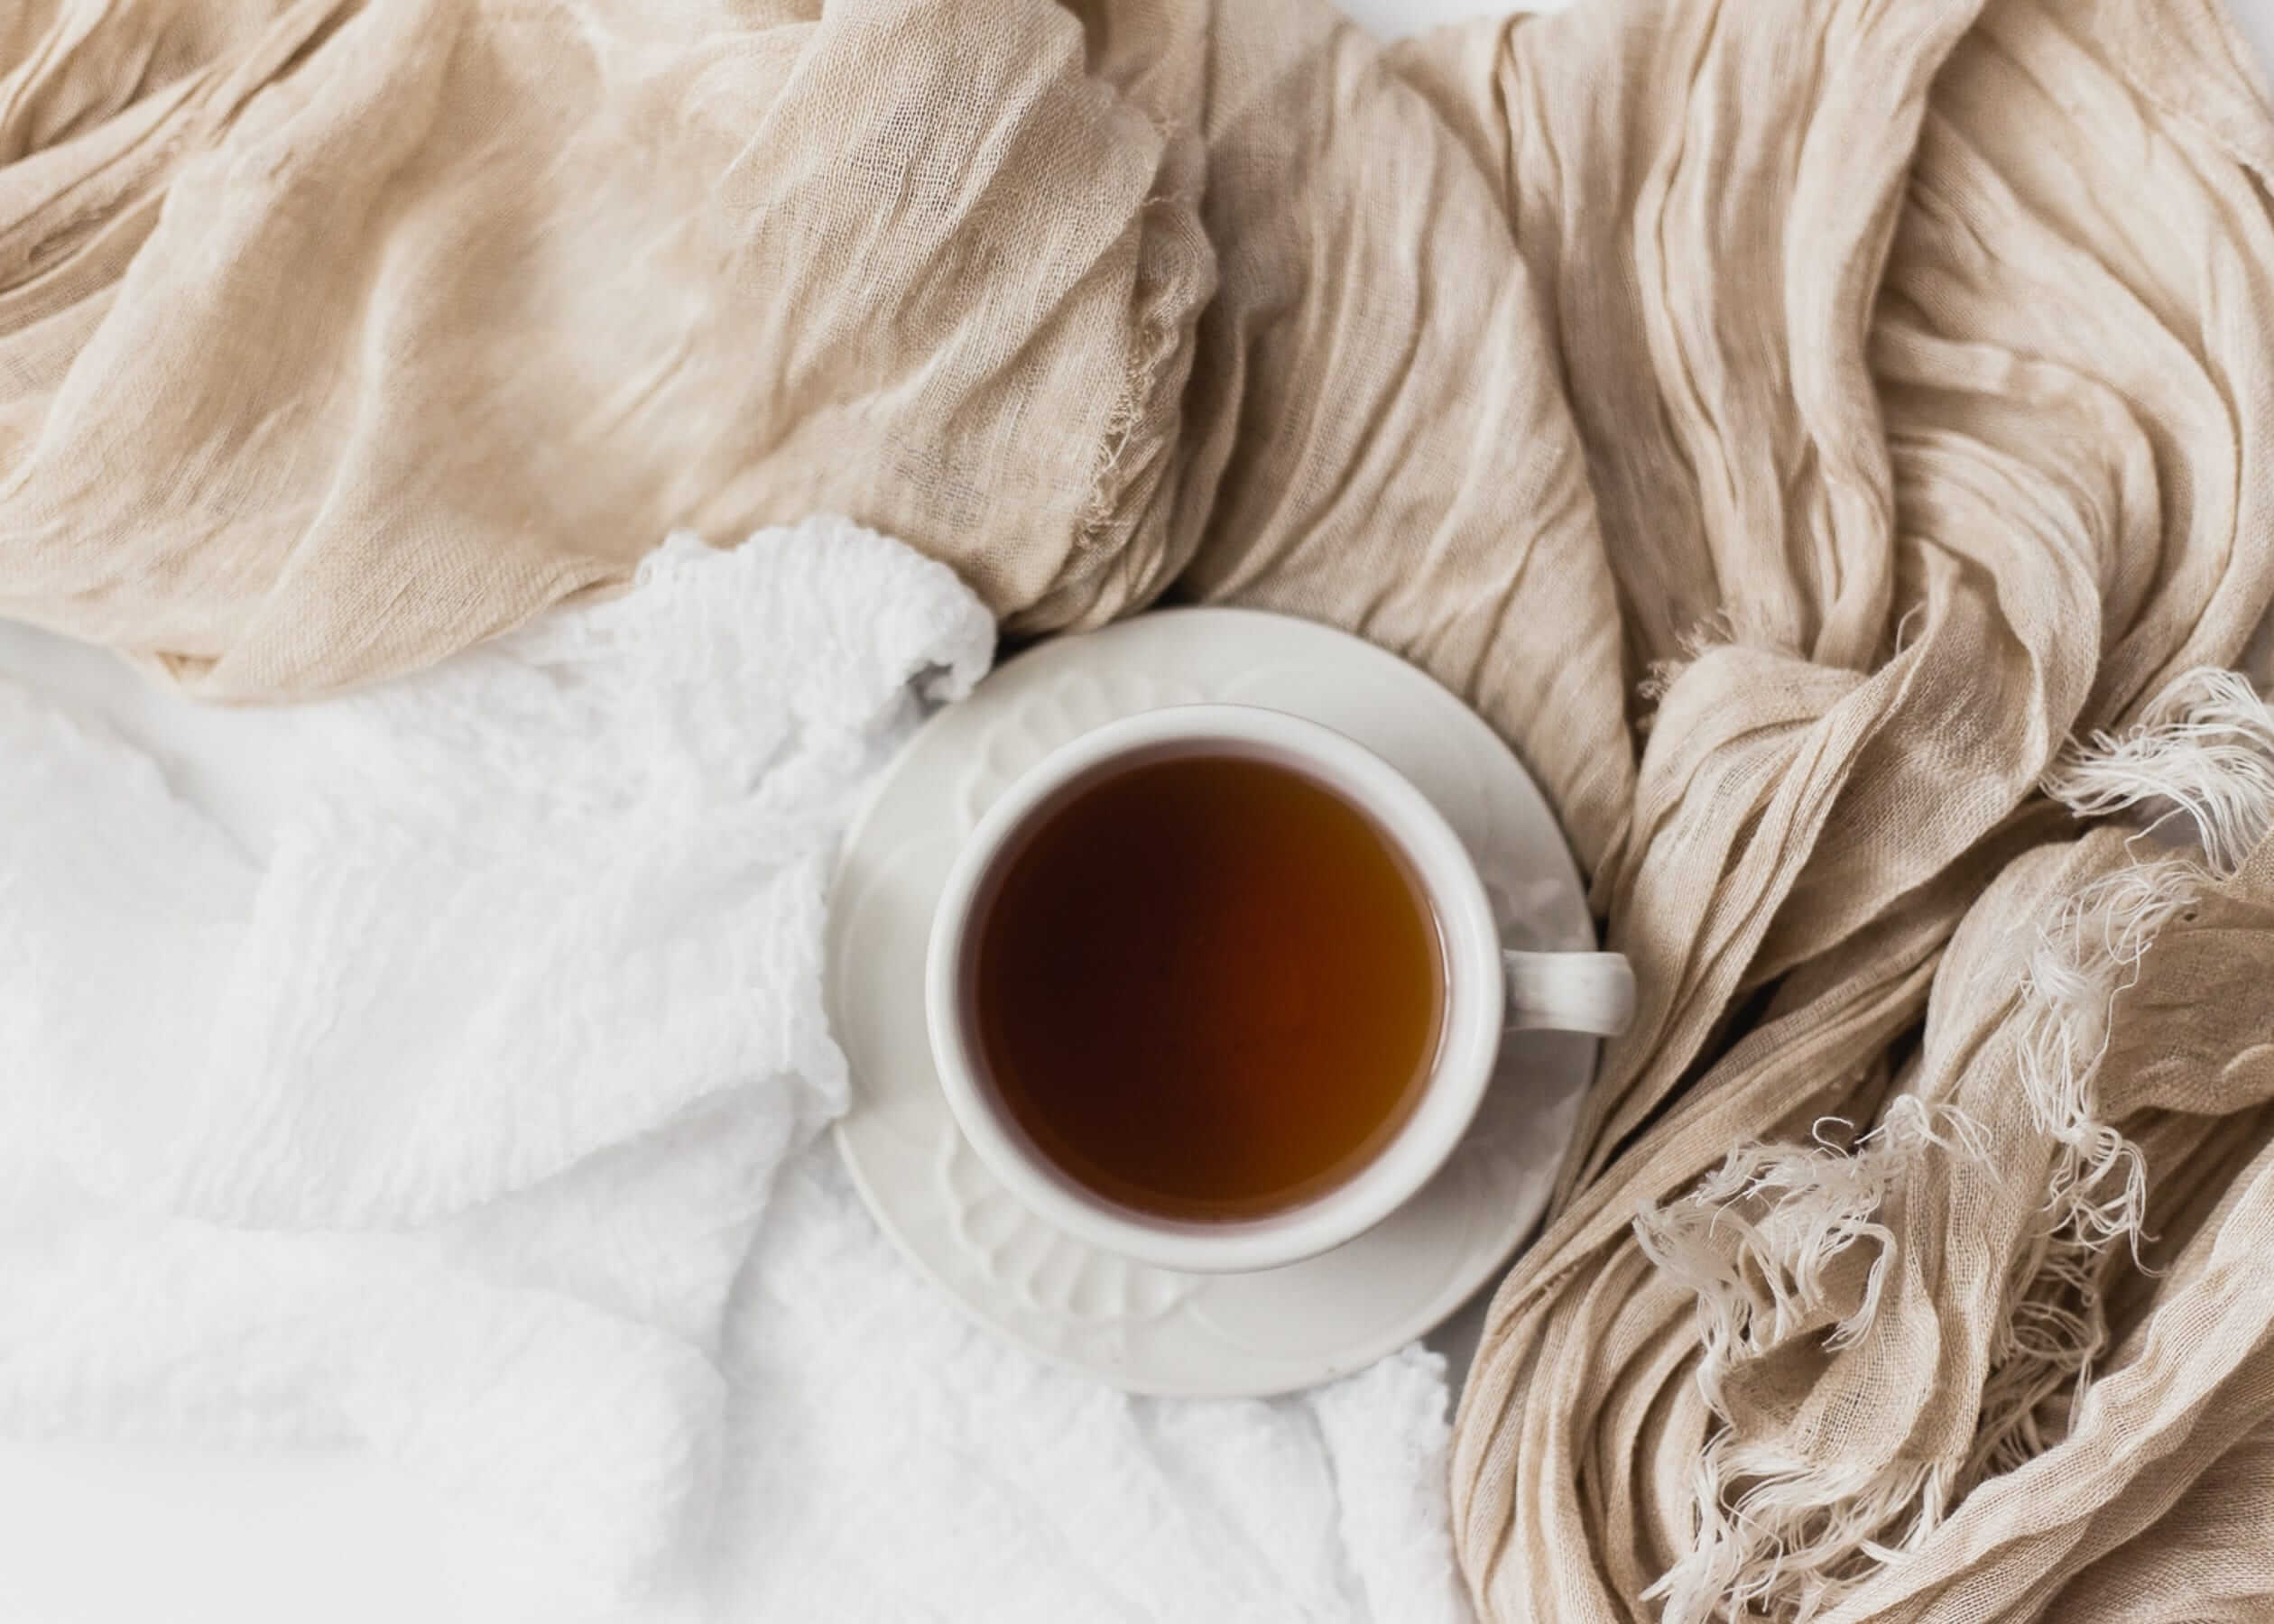 Foods for bloating - Coffee